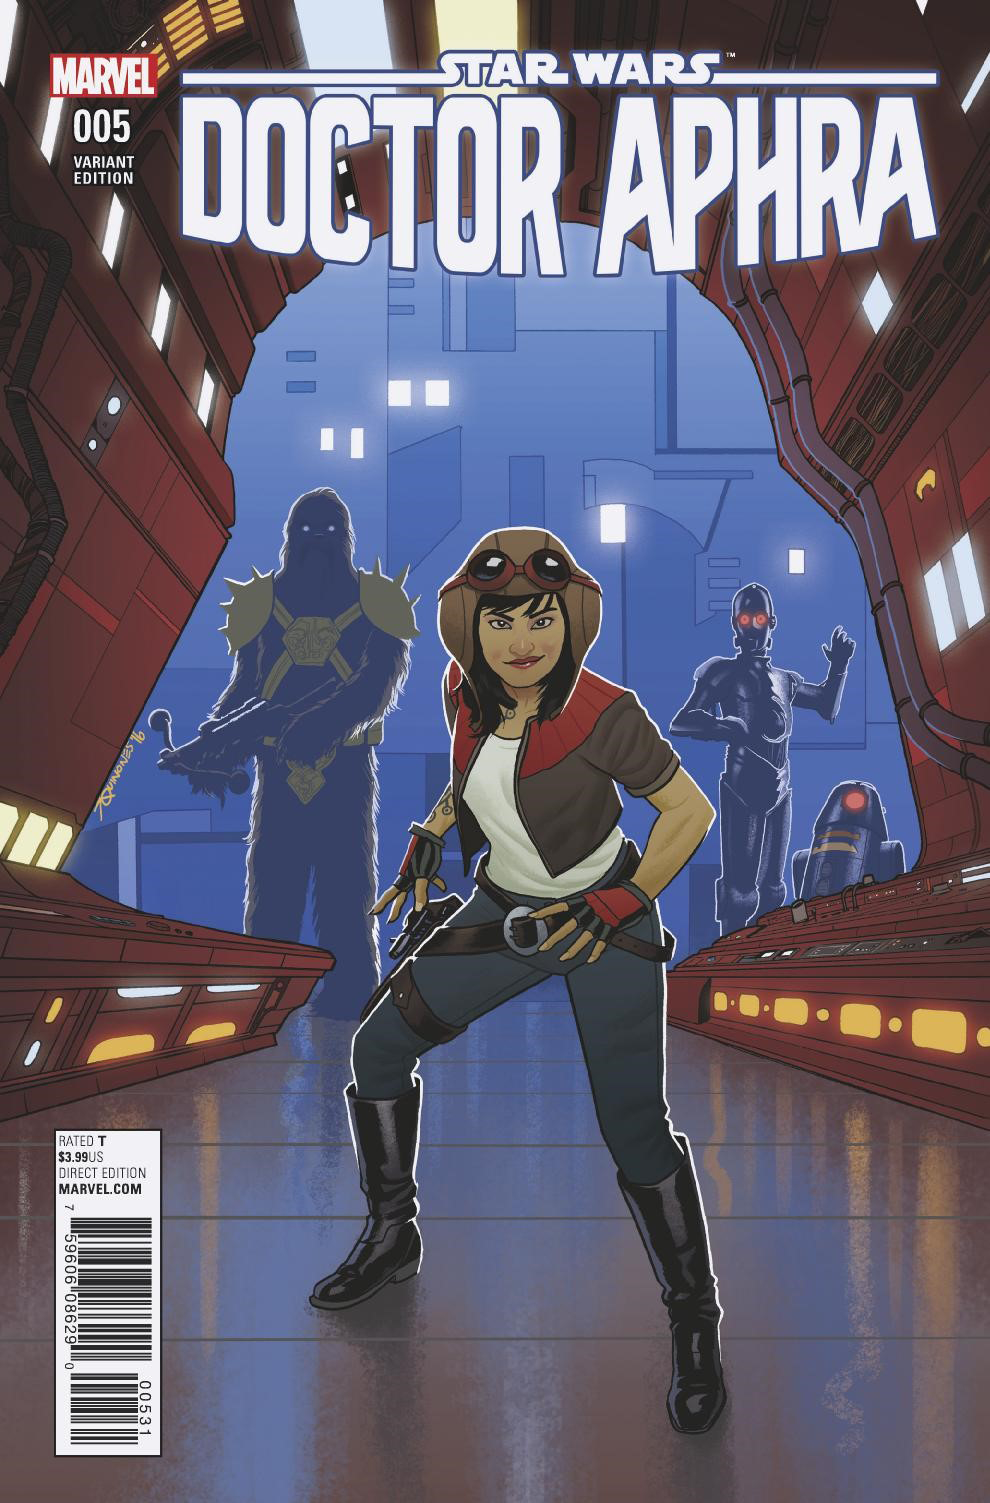 Doctor Aphra #5 (Joe Quinones Variant Cover) (08.03.2017)